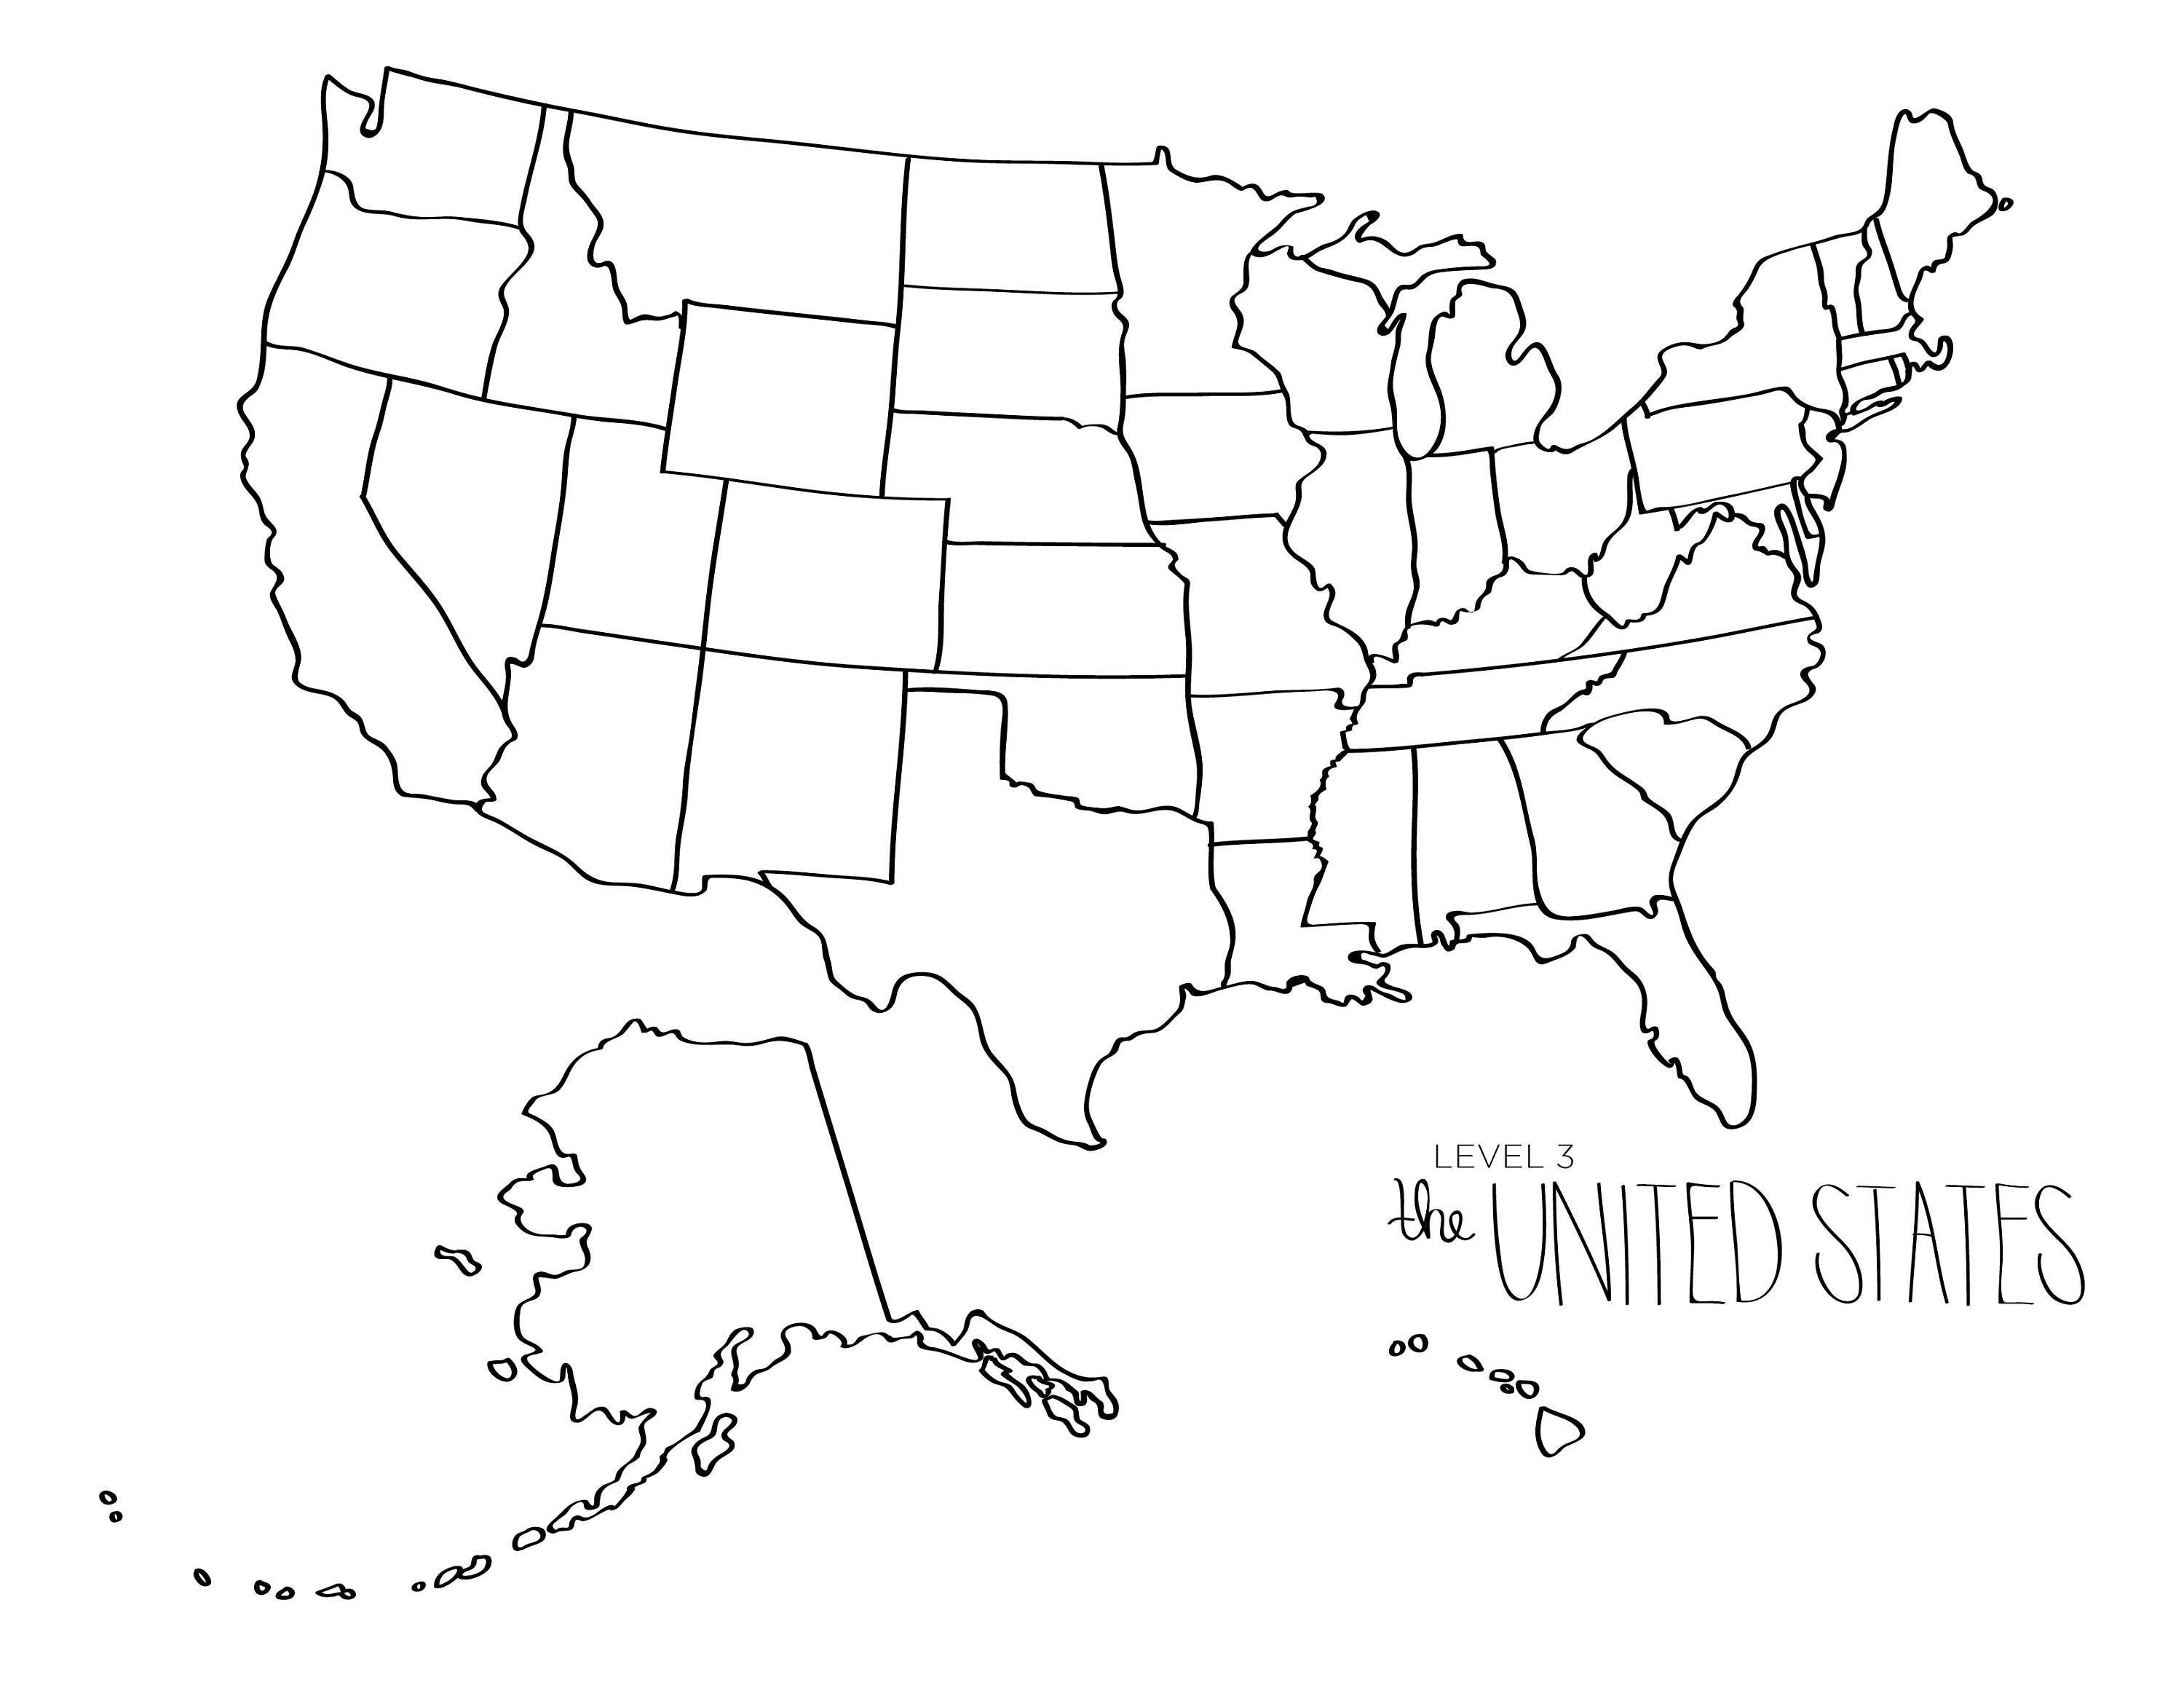 printable us map coloring page printable labeled united states states map coloring page us printable coloring map page